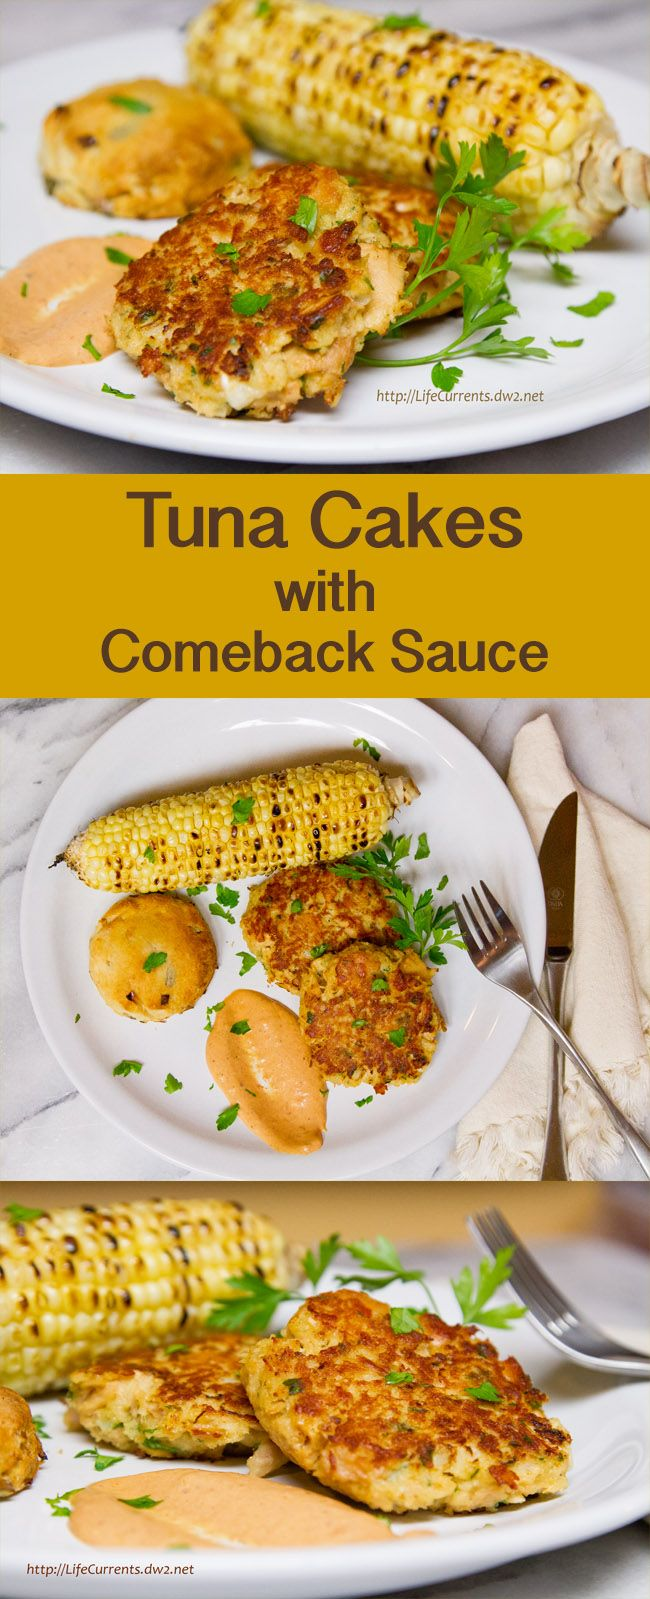 Island Trollers Tuna Cakes with Comeback Sauce, Corn on the Cob, and Biscuits